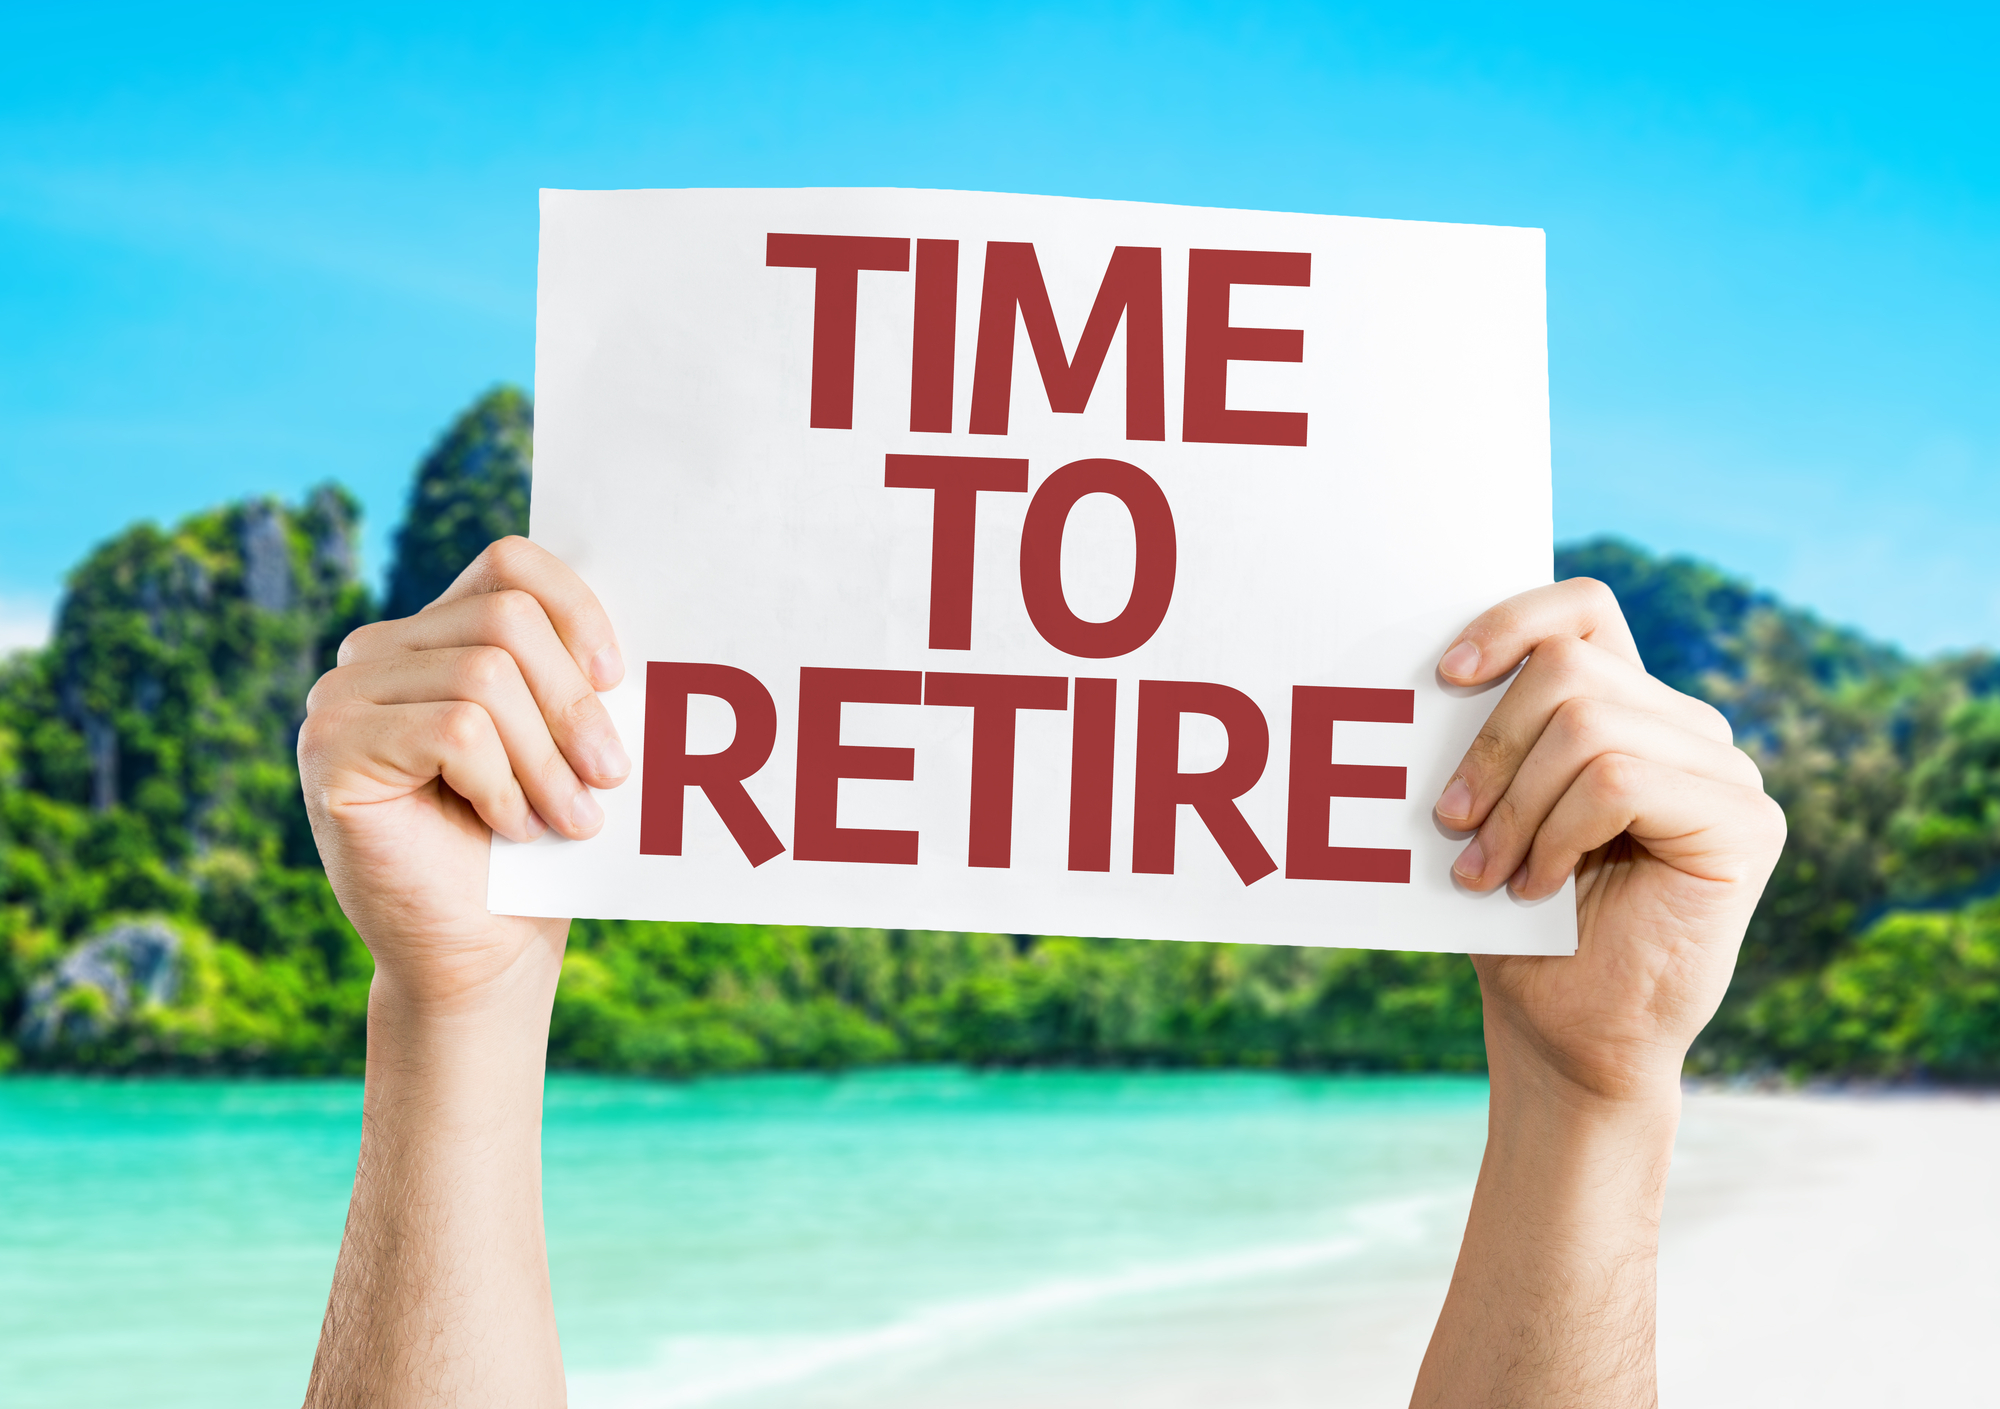 I Cannot Wait to Retire